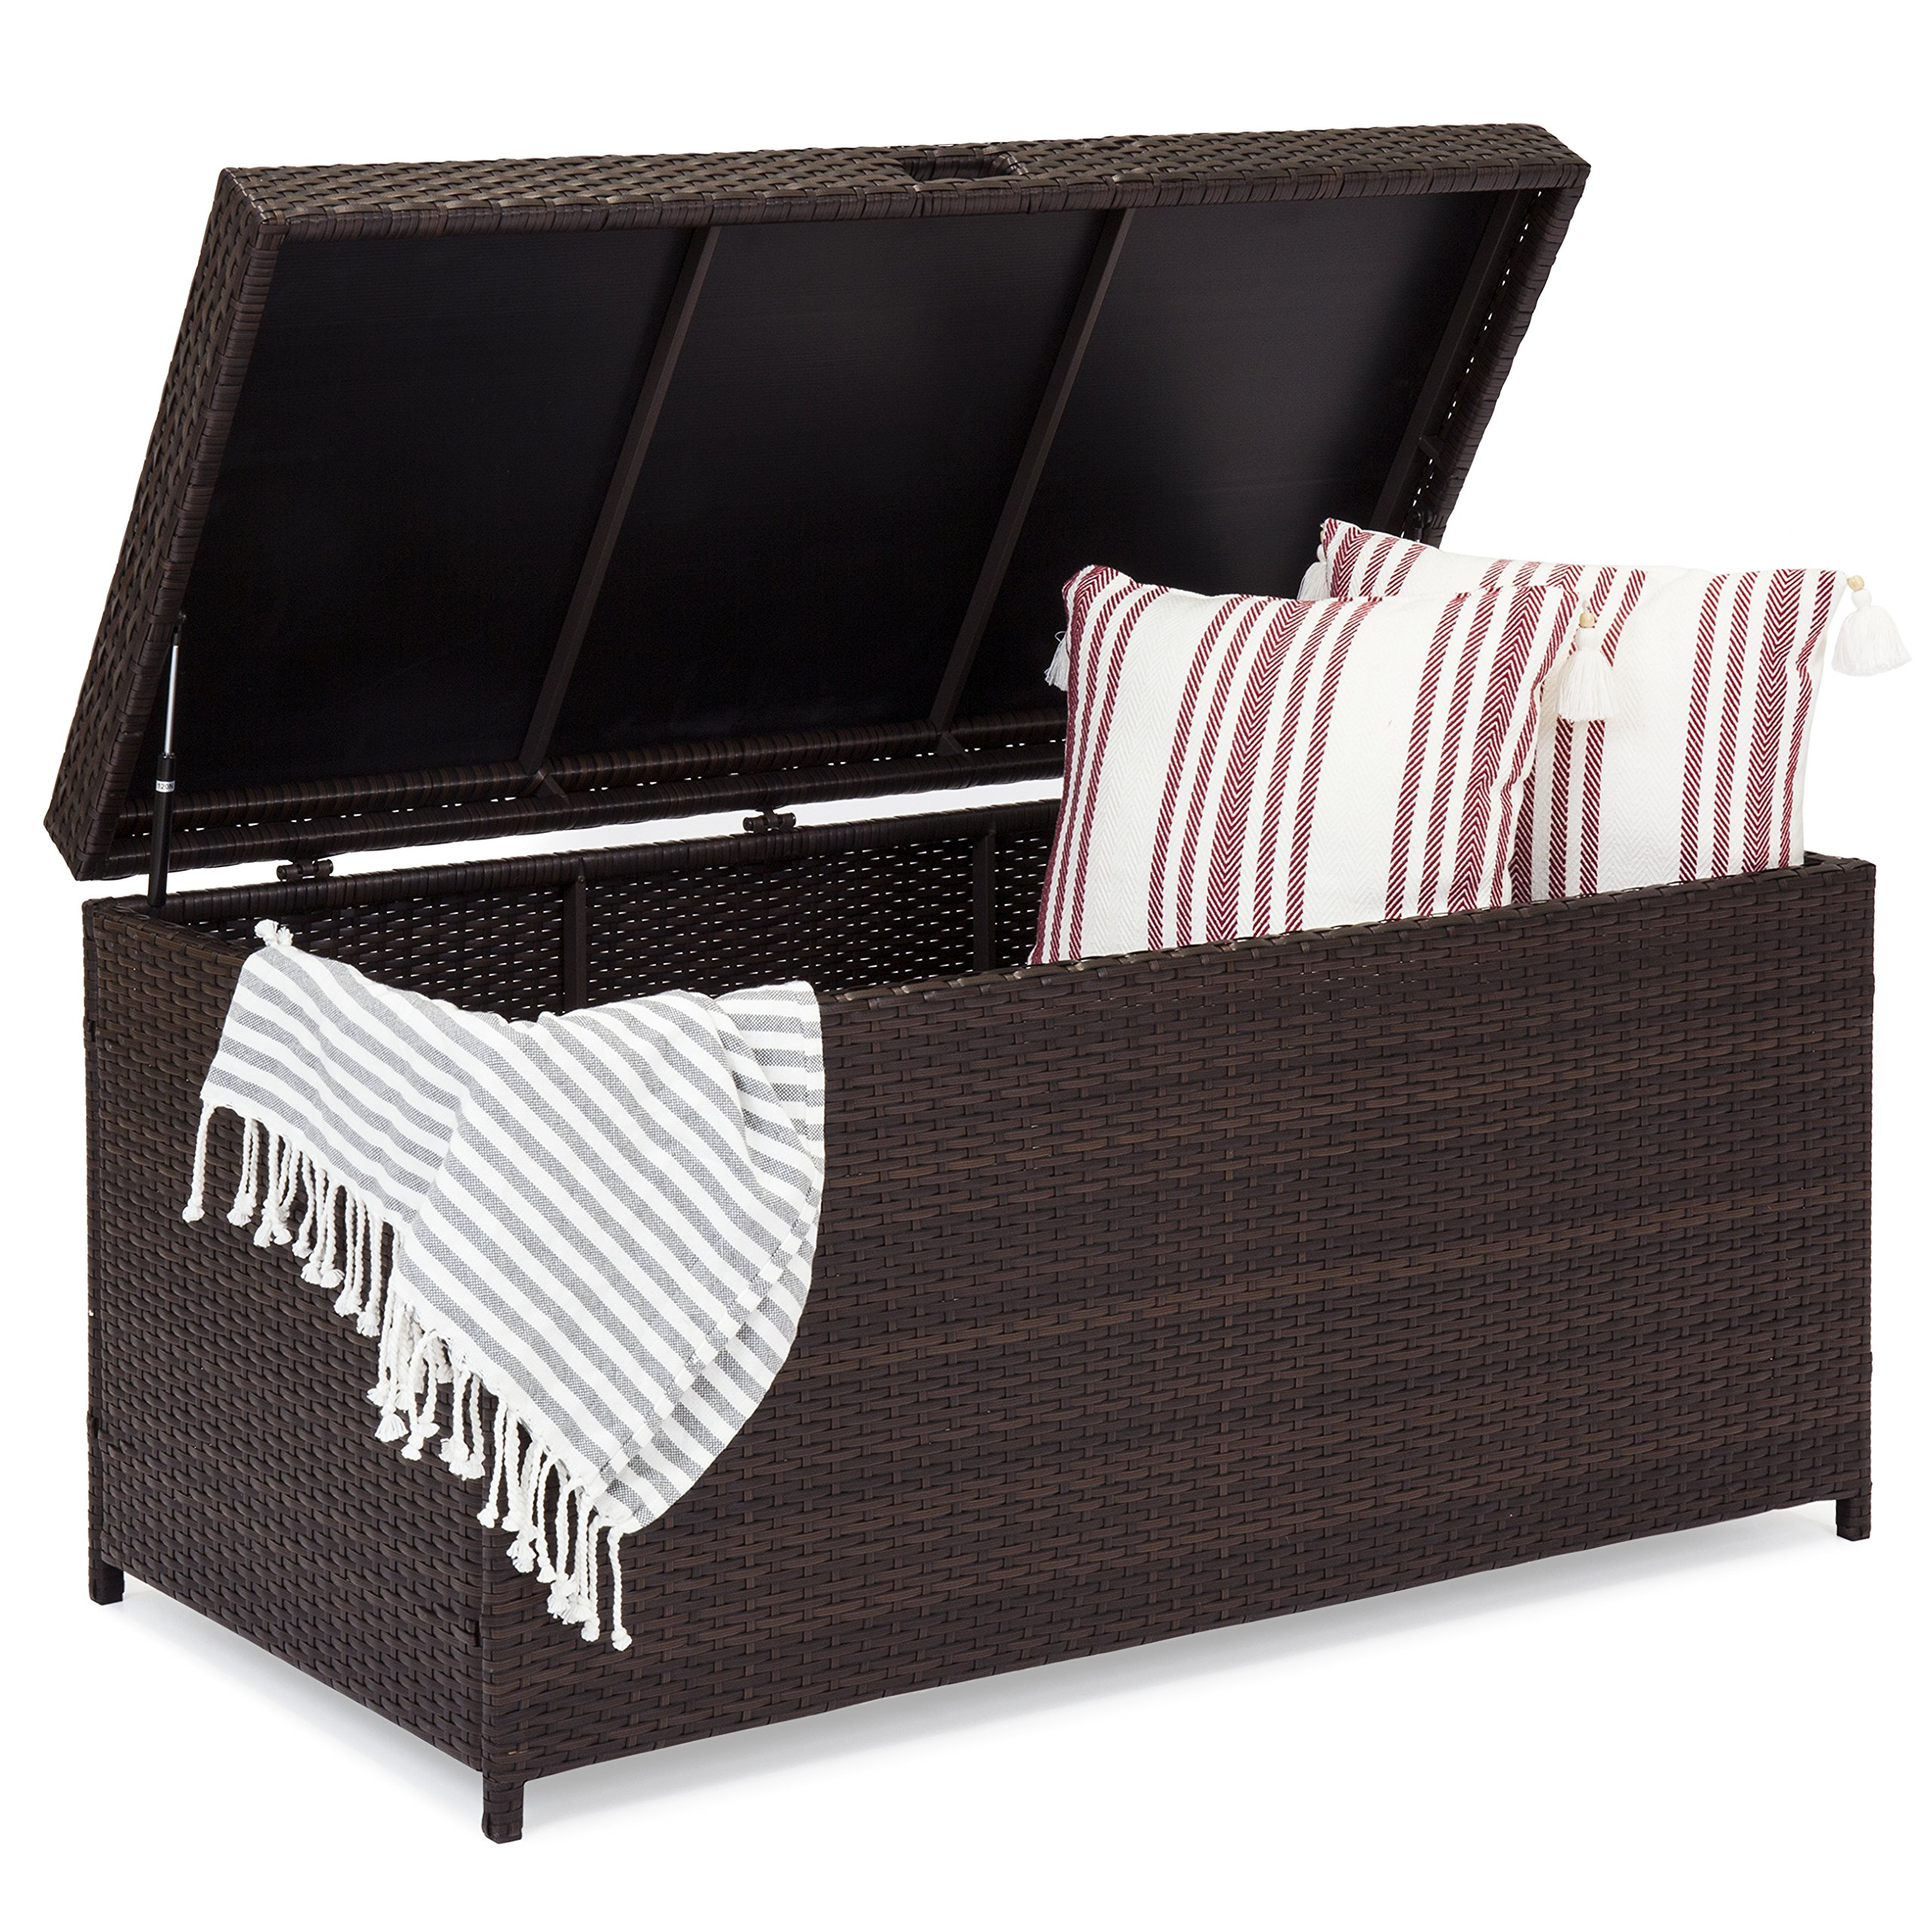 Best Choice Products Outdoor Wicker Patio Furniture Deck Storage Box w/Safety Pneumatic Hinges and Deep Bed for Cushions, Pillows, and Pool Accessories, Brown